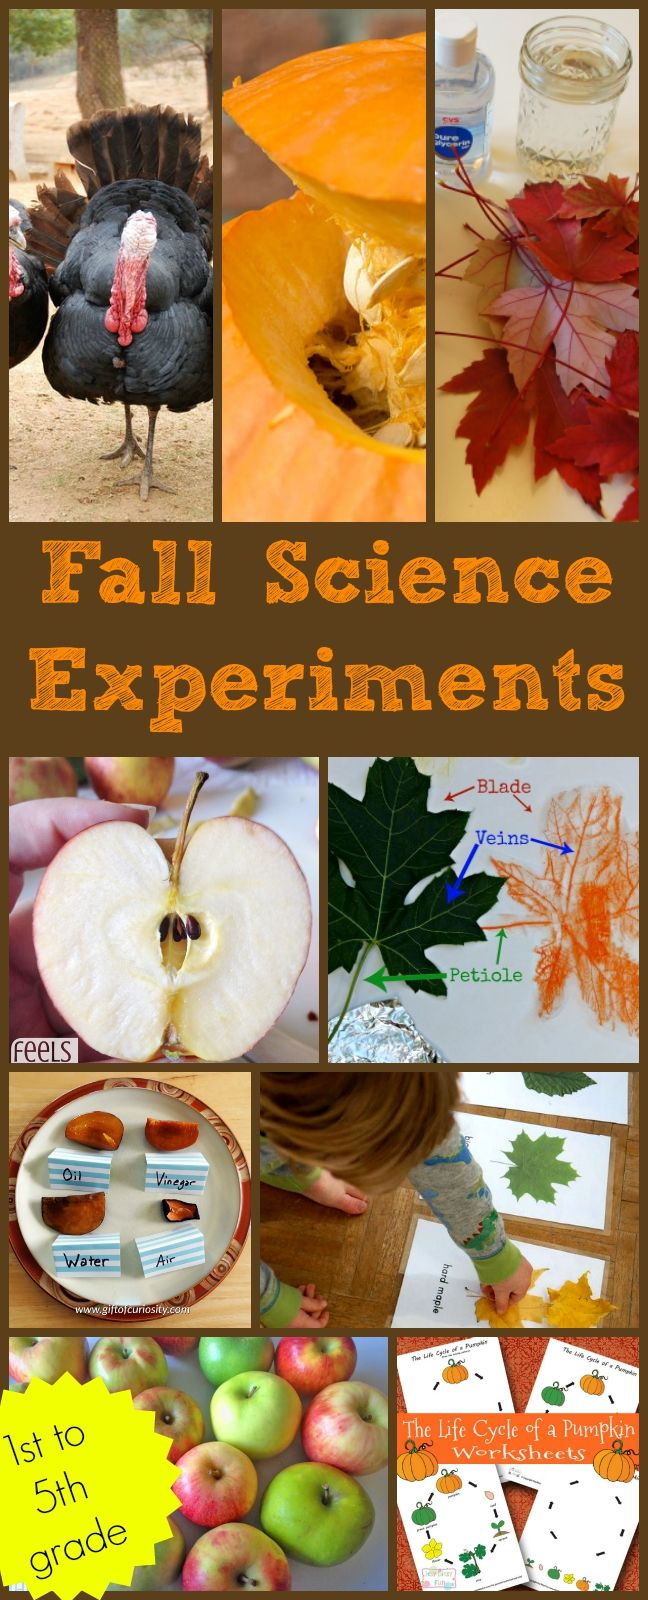 Fall Science Experiments | Science experiments, Thanksgiving and ...